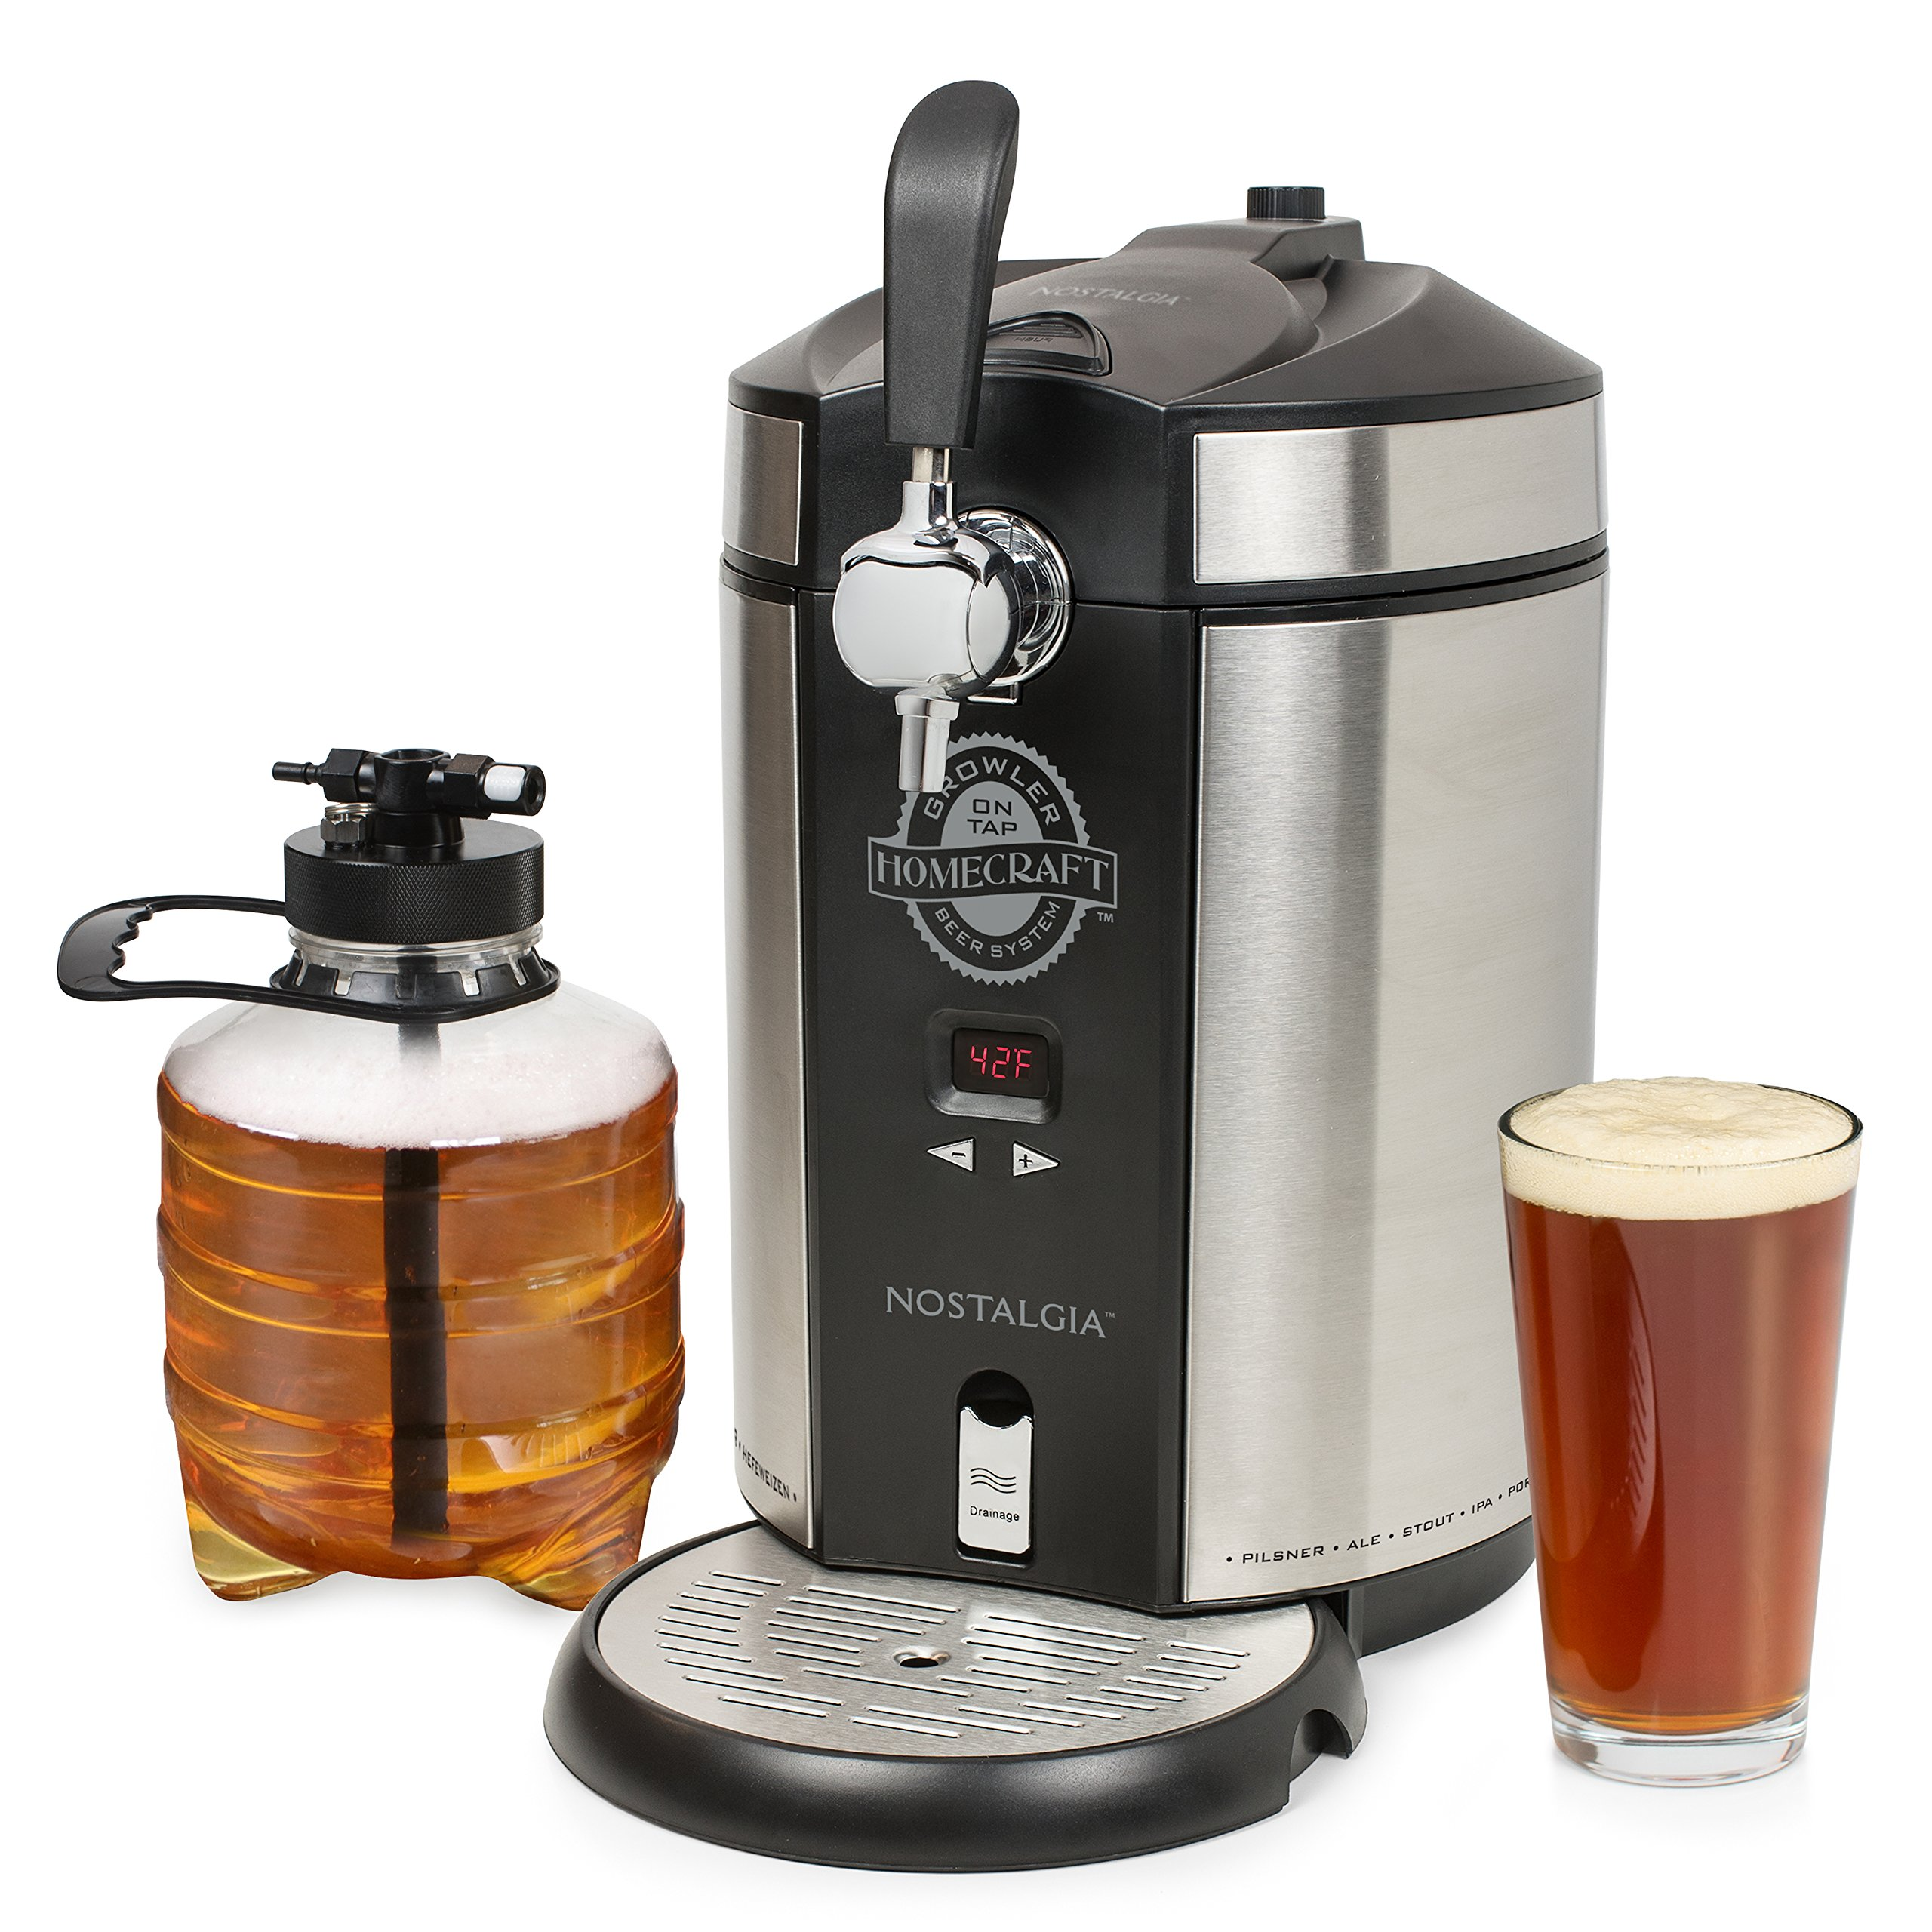 Nostalgia CBD5SS CBD5S Homecraft on Tap Beer Growler Cooler, Stainless Steel